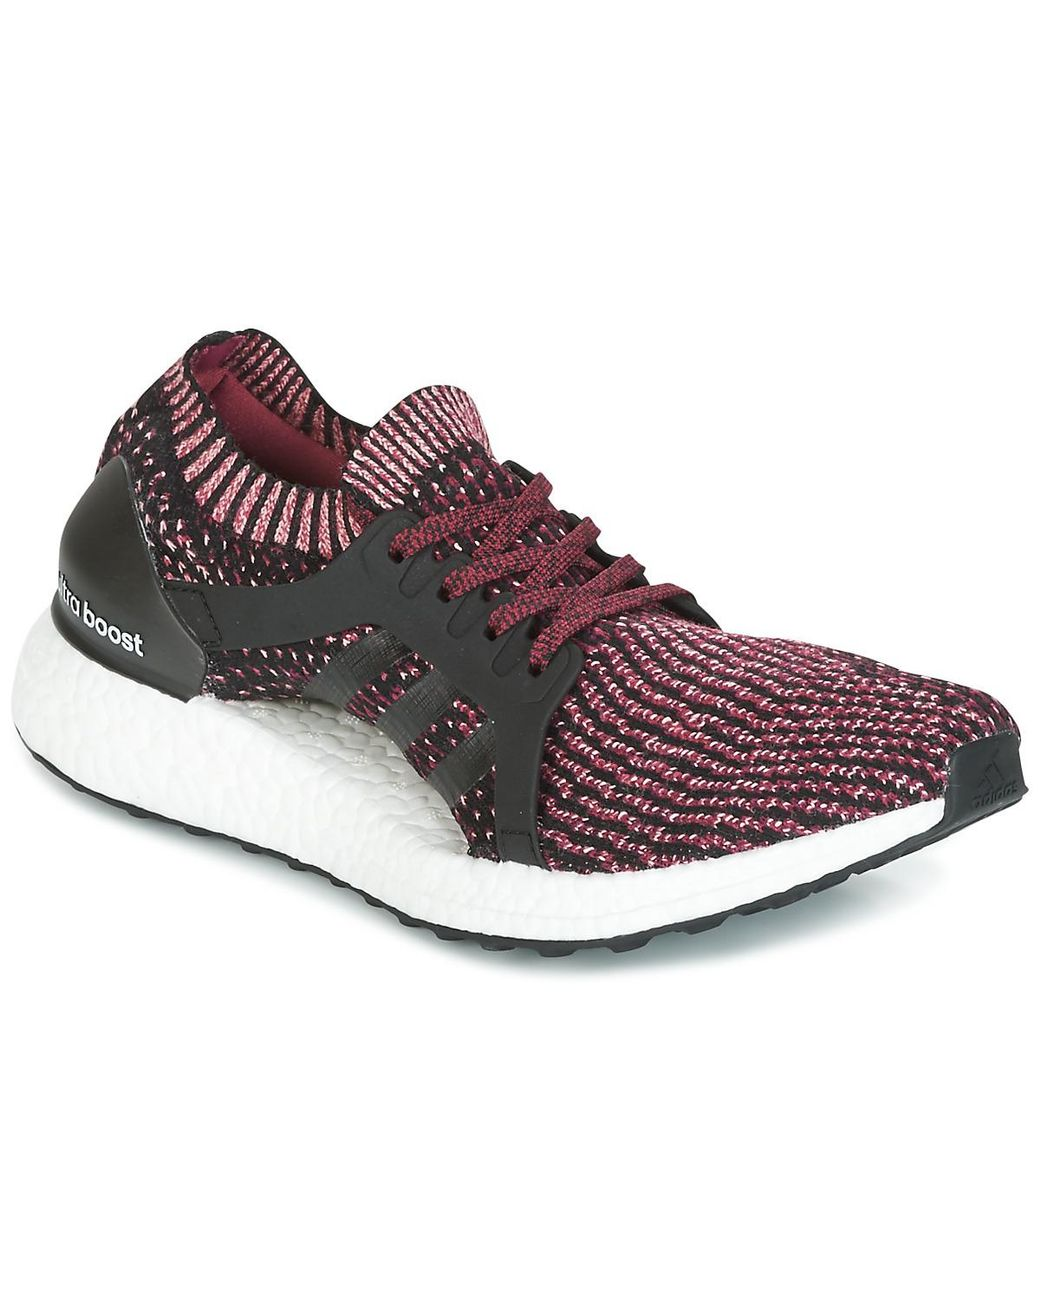 7b1be08cef1 adidas Ultraboost X Women s Running Trainers In Pink in Pink - Save ...